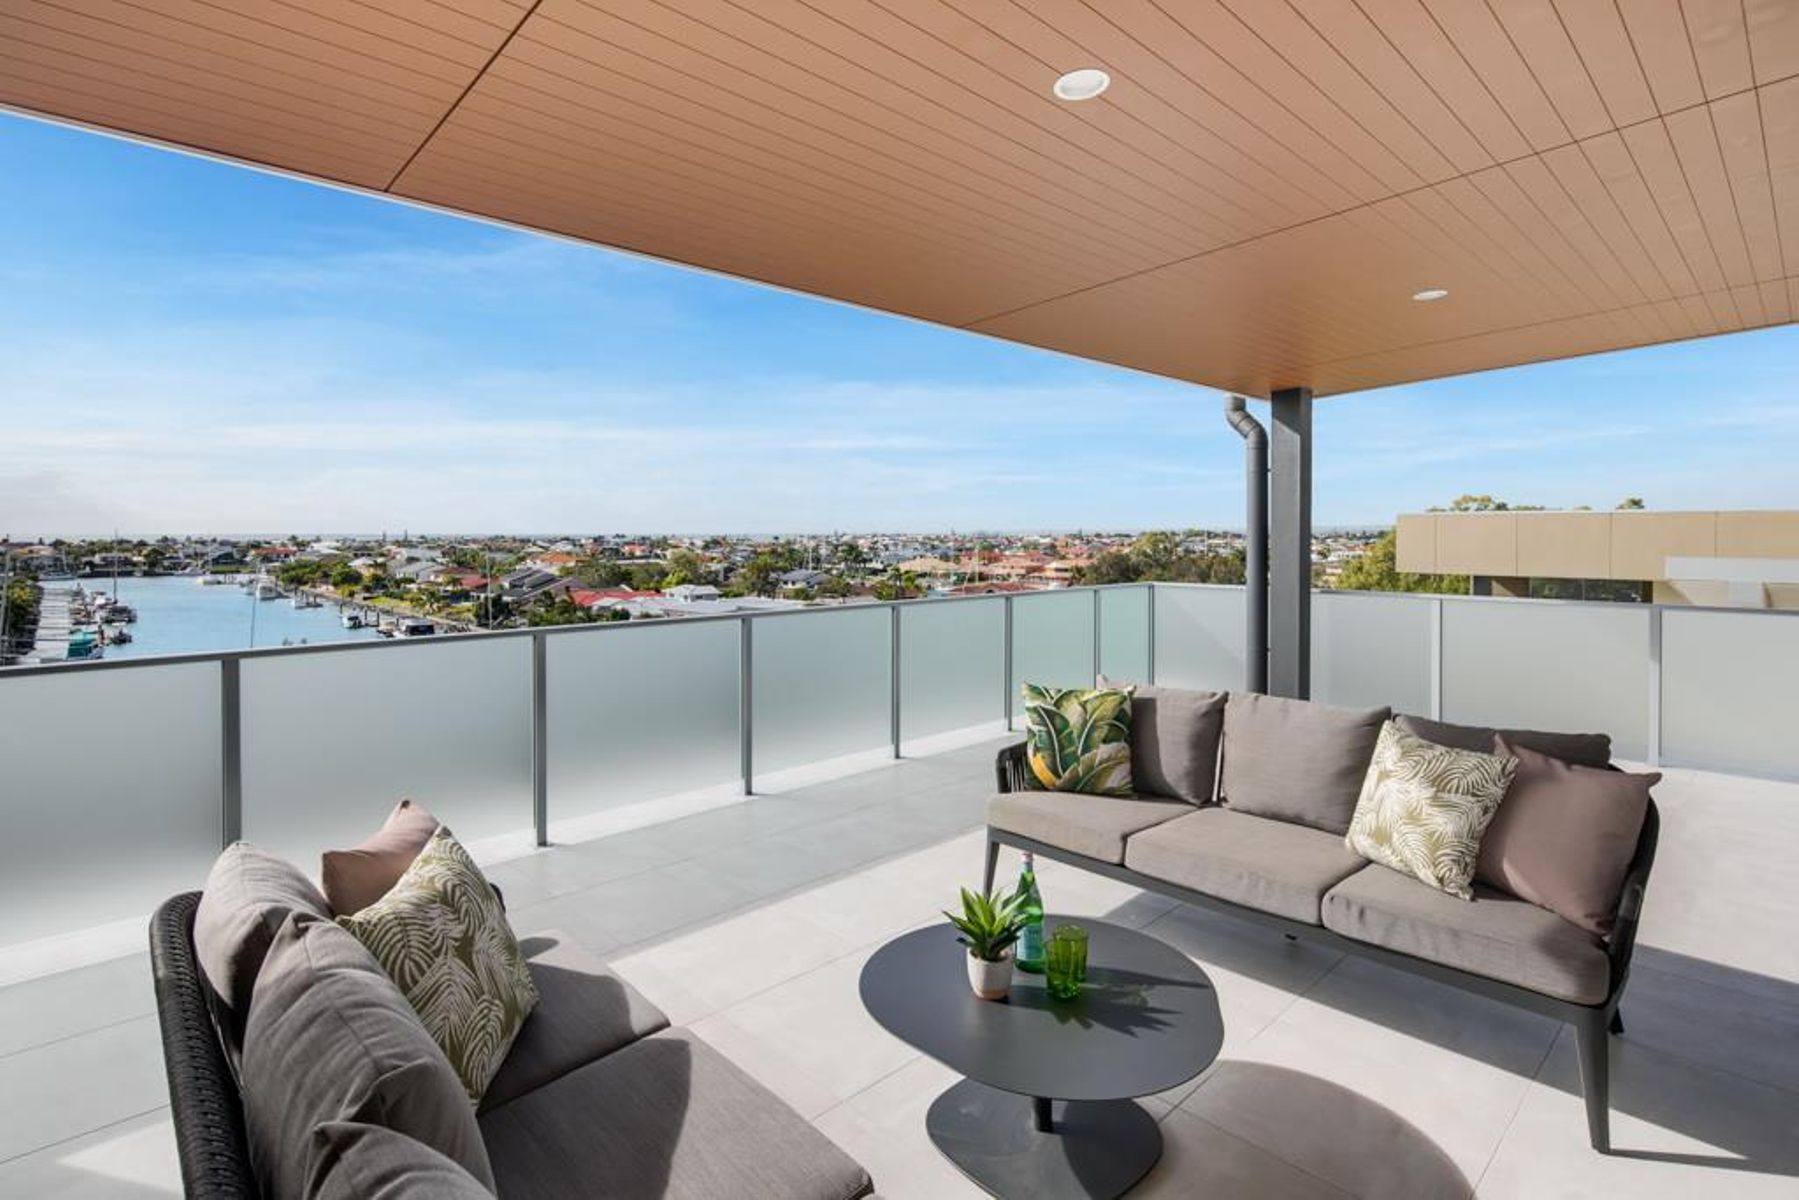 60 1 fitzroy st cleveland qld 4163 australia house for sale